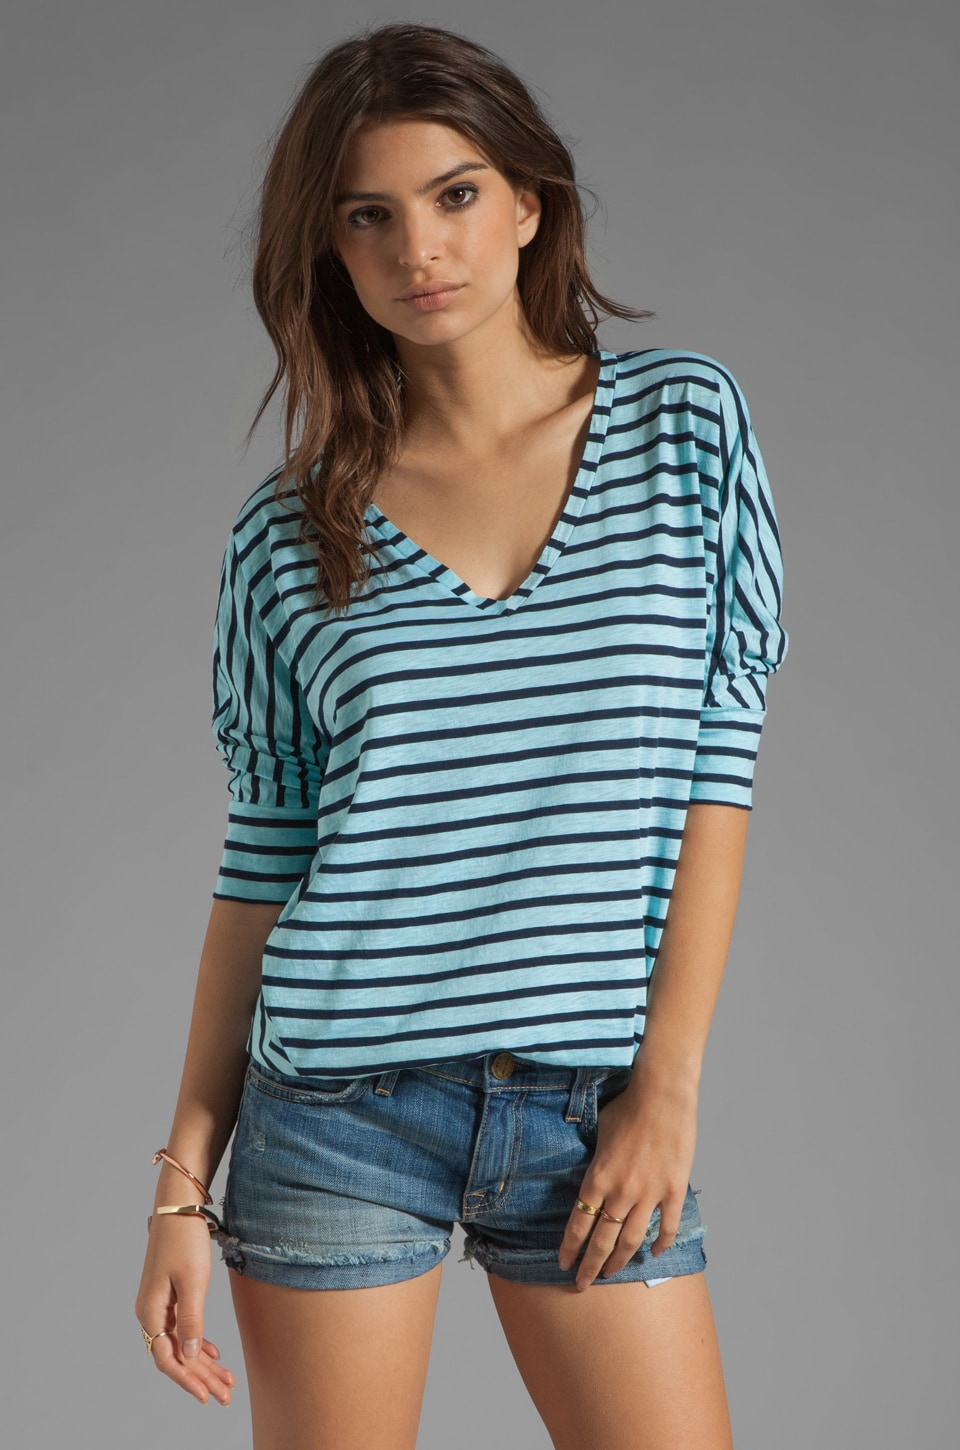 Splendid Miami Stripe V Neck in Caribbean